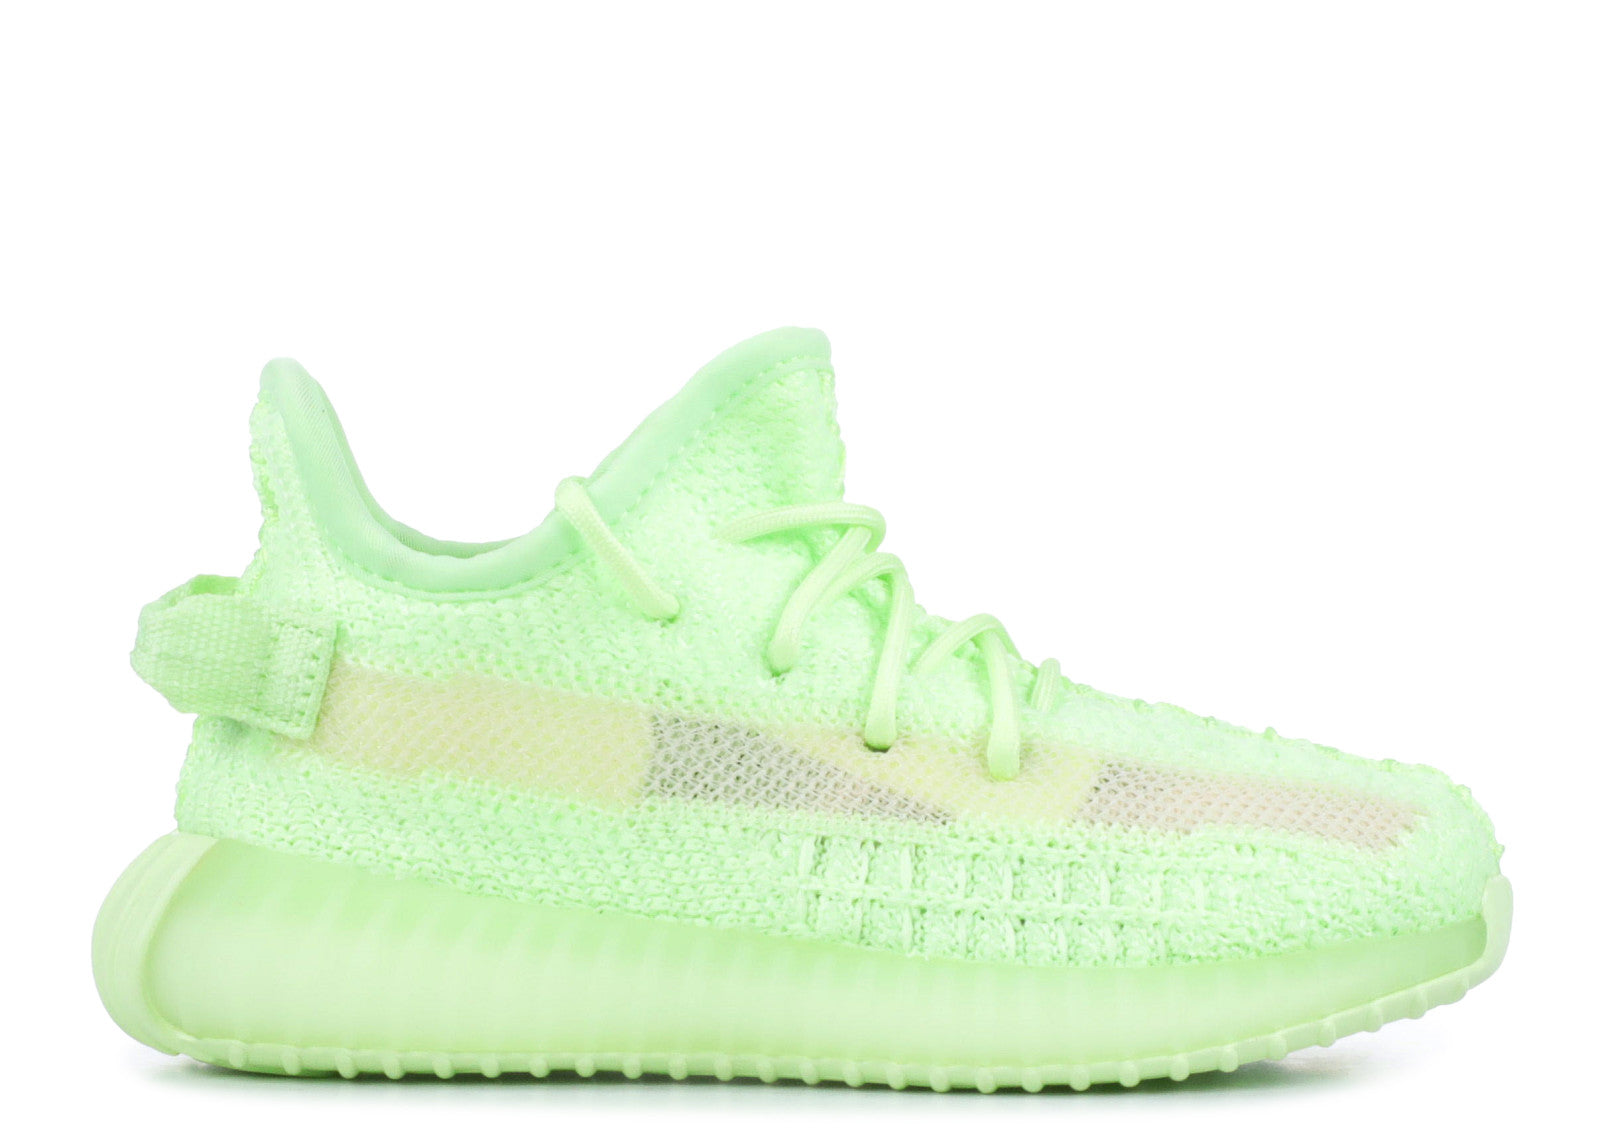 Adidas Yeezy Boost 350 V2 Infant 'Glow'